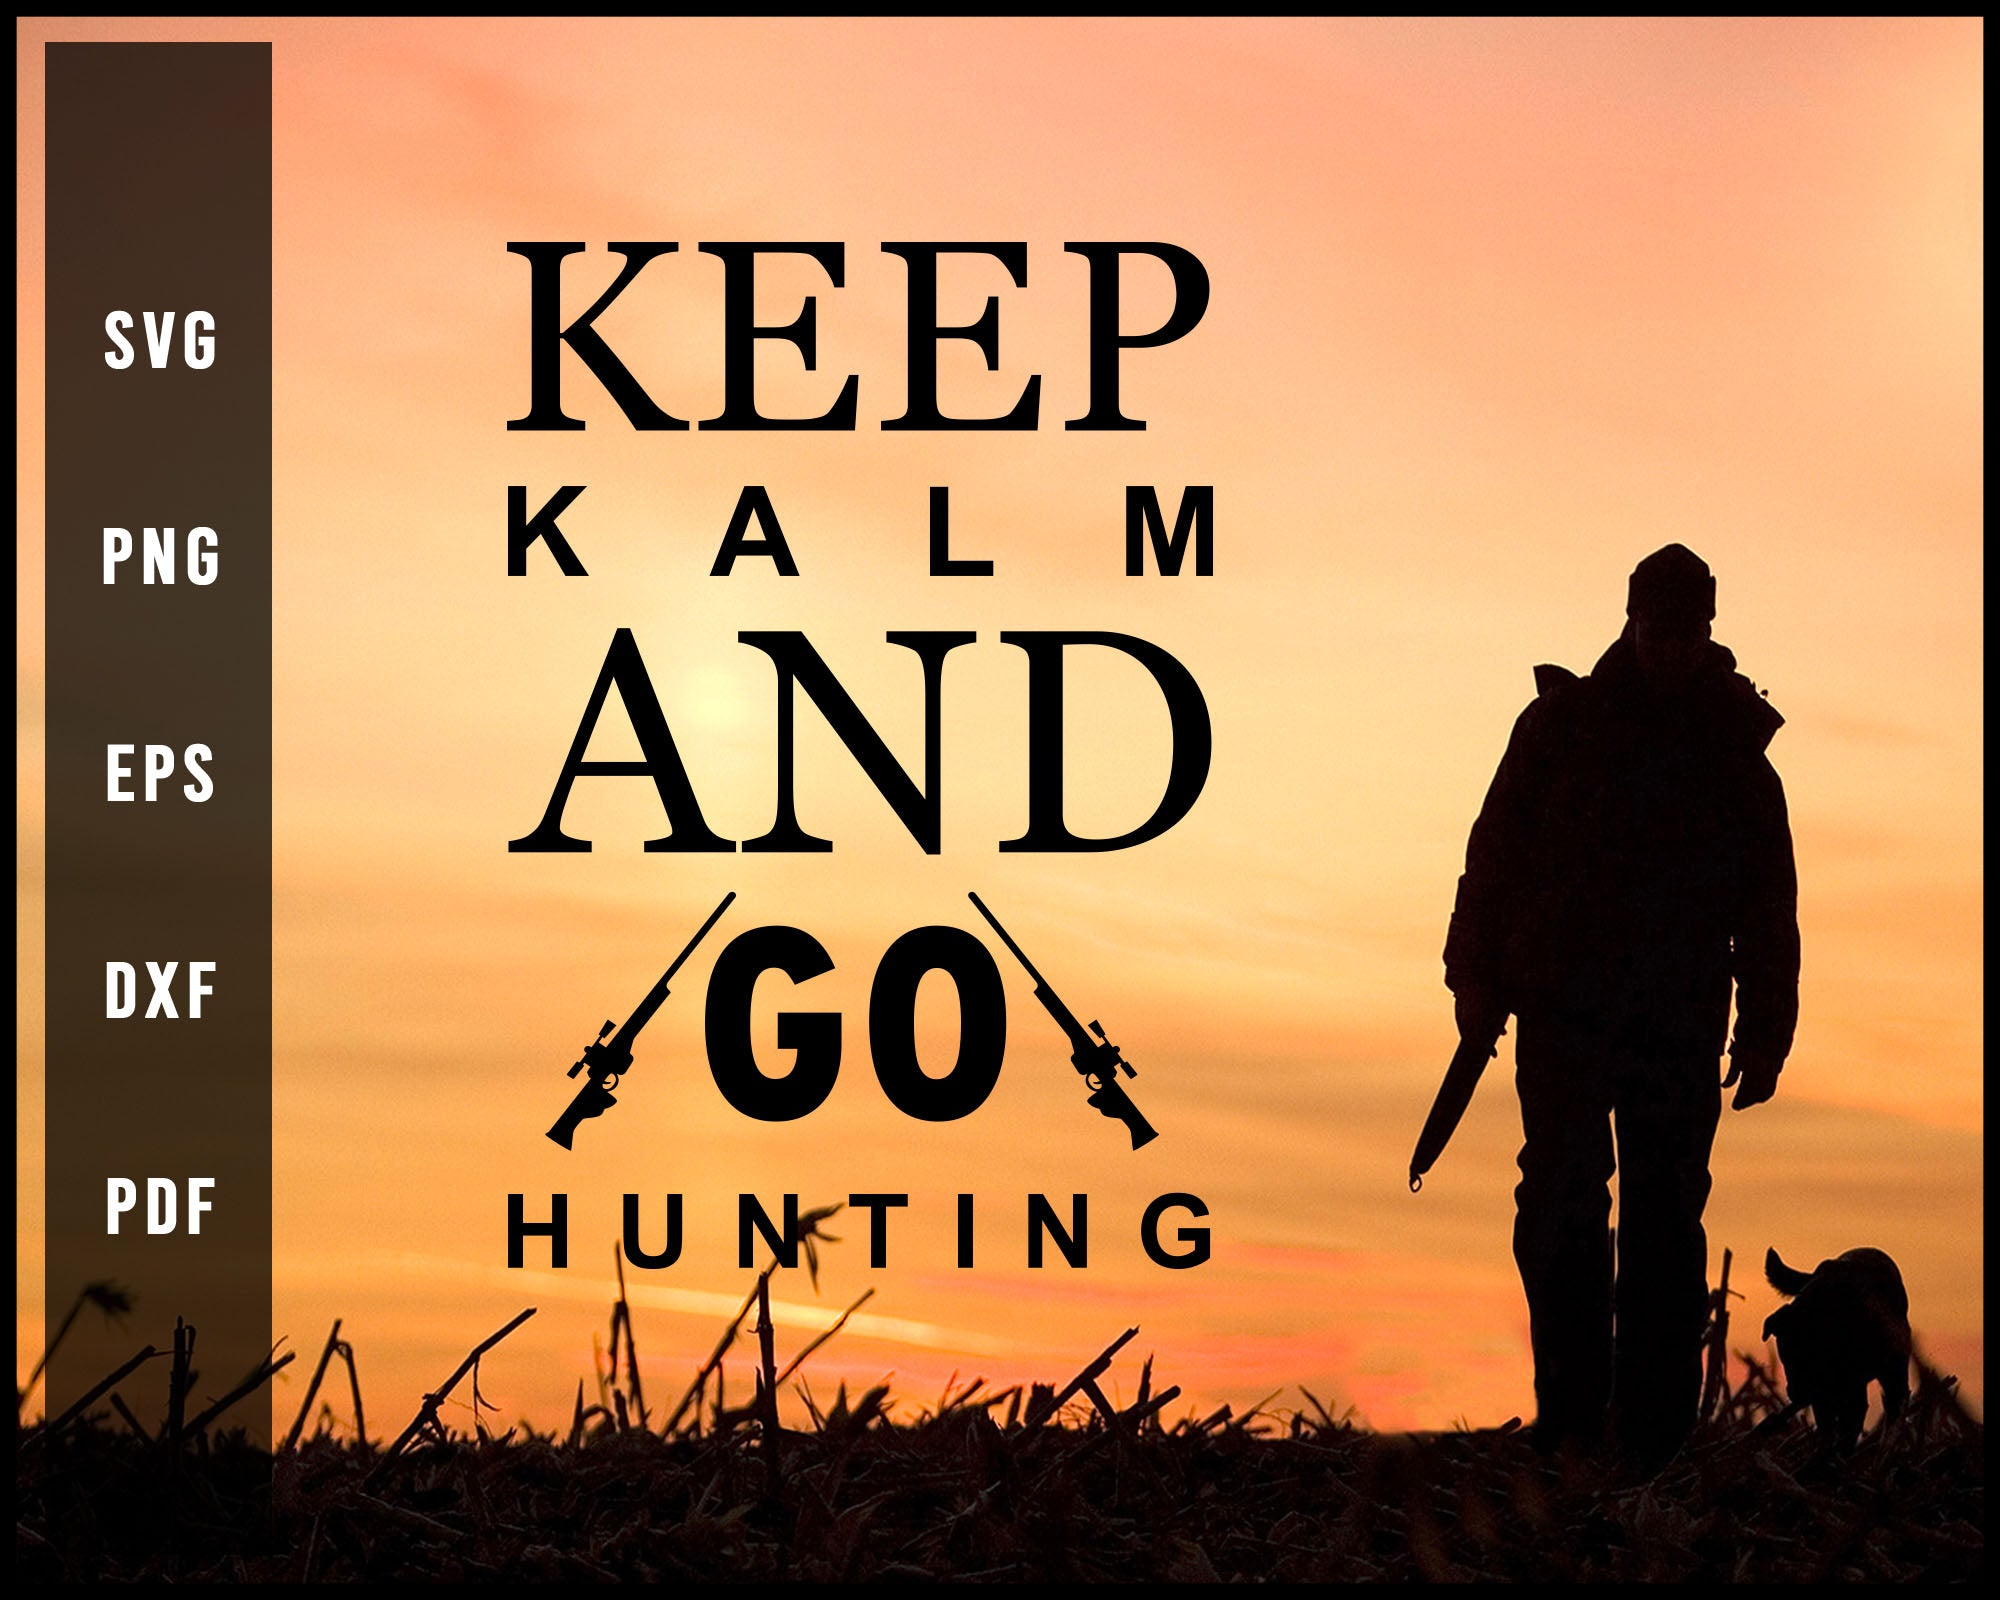 Keep Kalm And Go Hunting svg png Silhouette Designs For Cricut And Printable Files